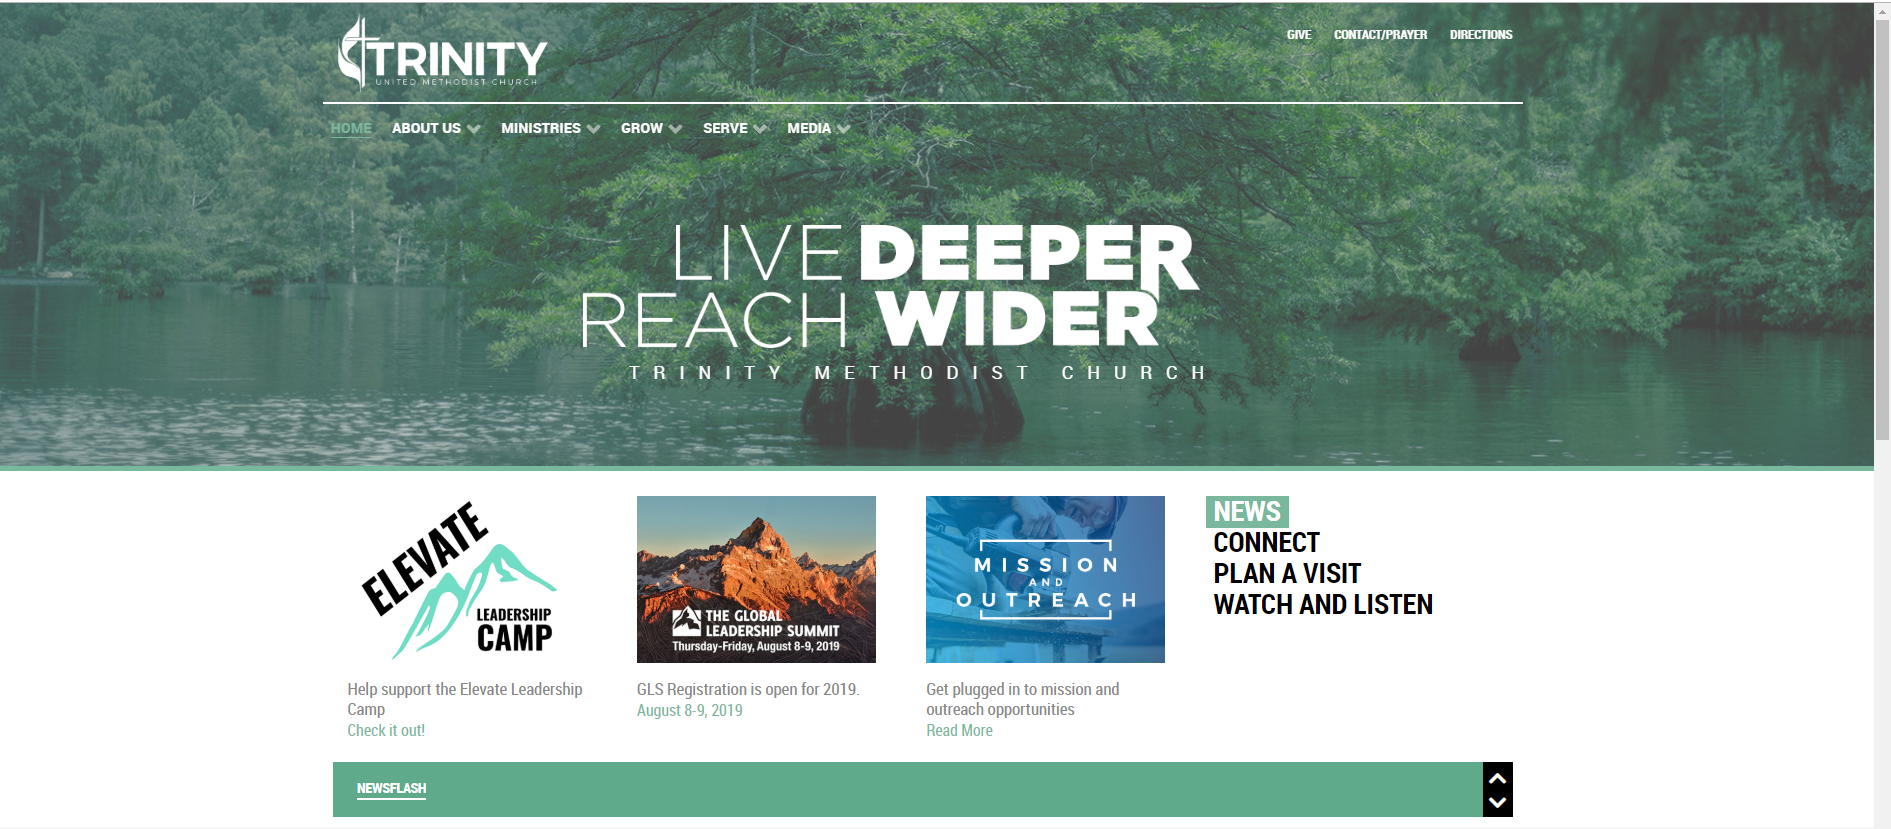 screenshot of Trinity United Methodist Church website with Elevate Leadership Camp link on front page